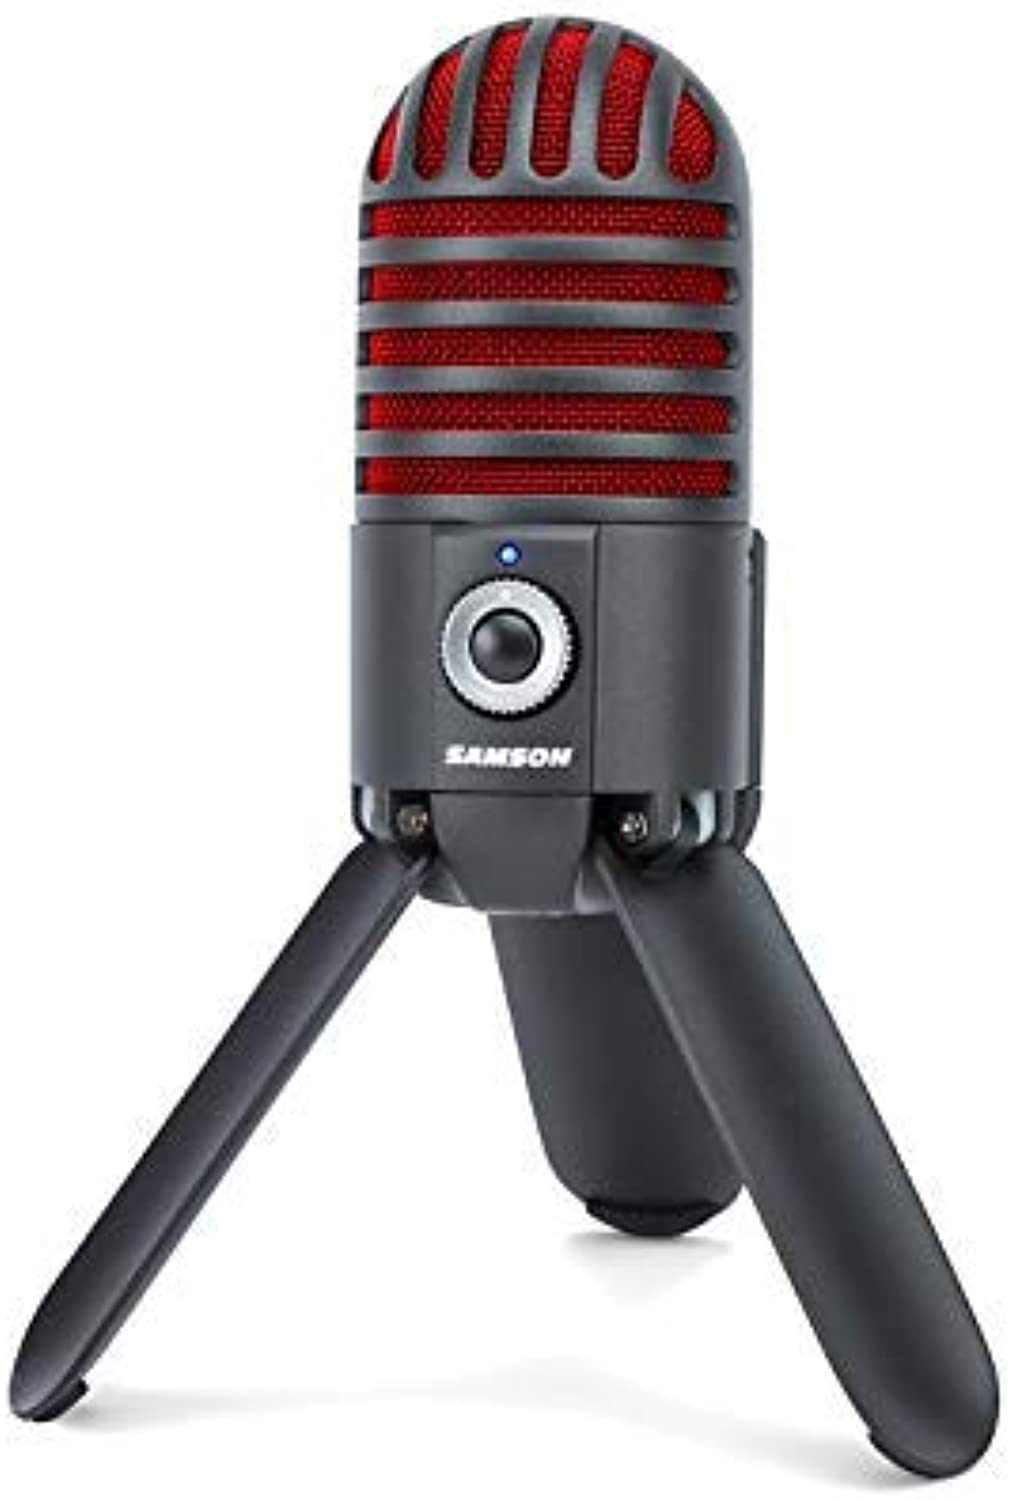 Samson Meteor Mic USB Studio Microphone, Titanium Black Red  Limited Edition